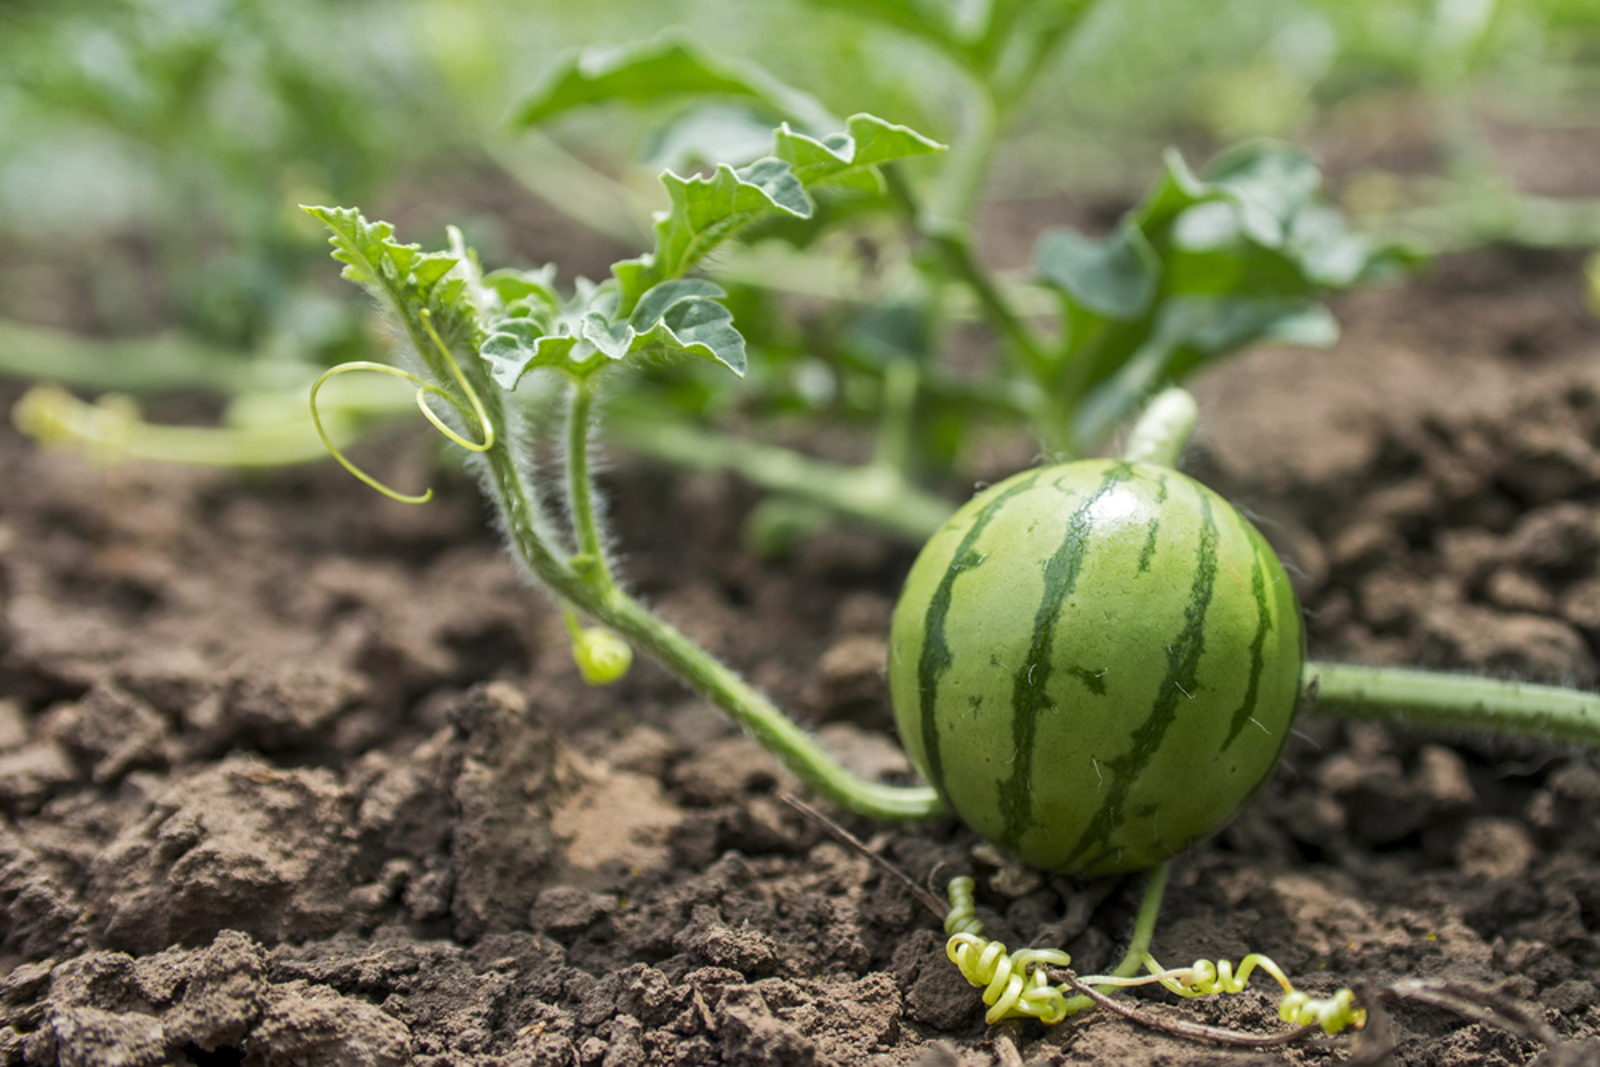 How to Grow Your Own Watermelons